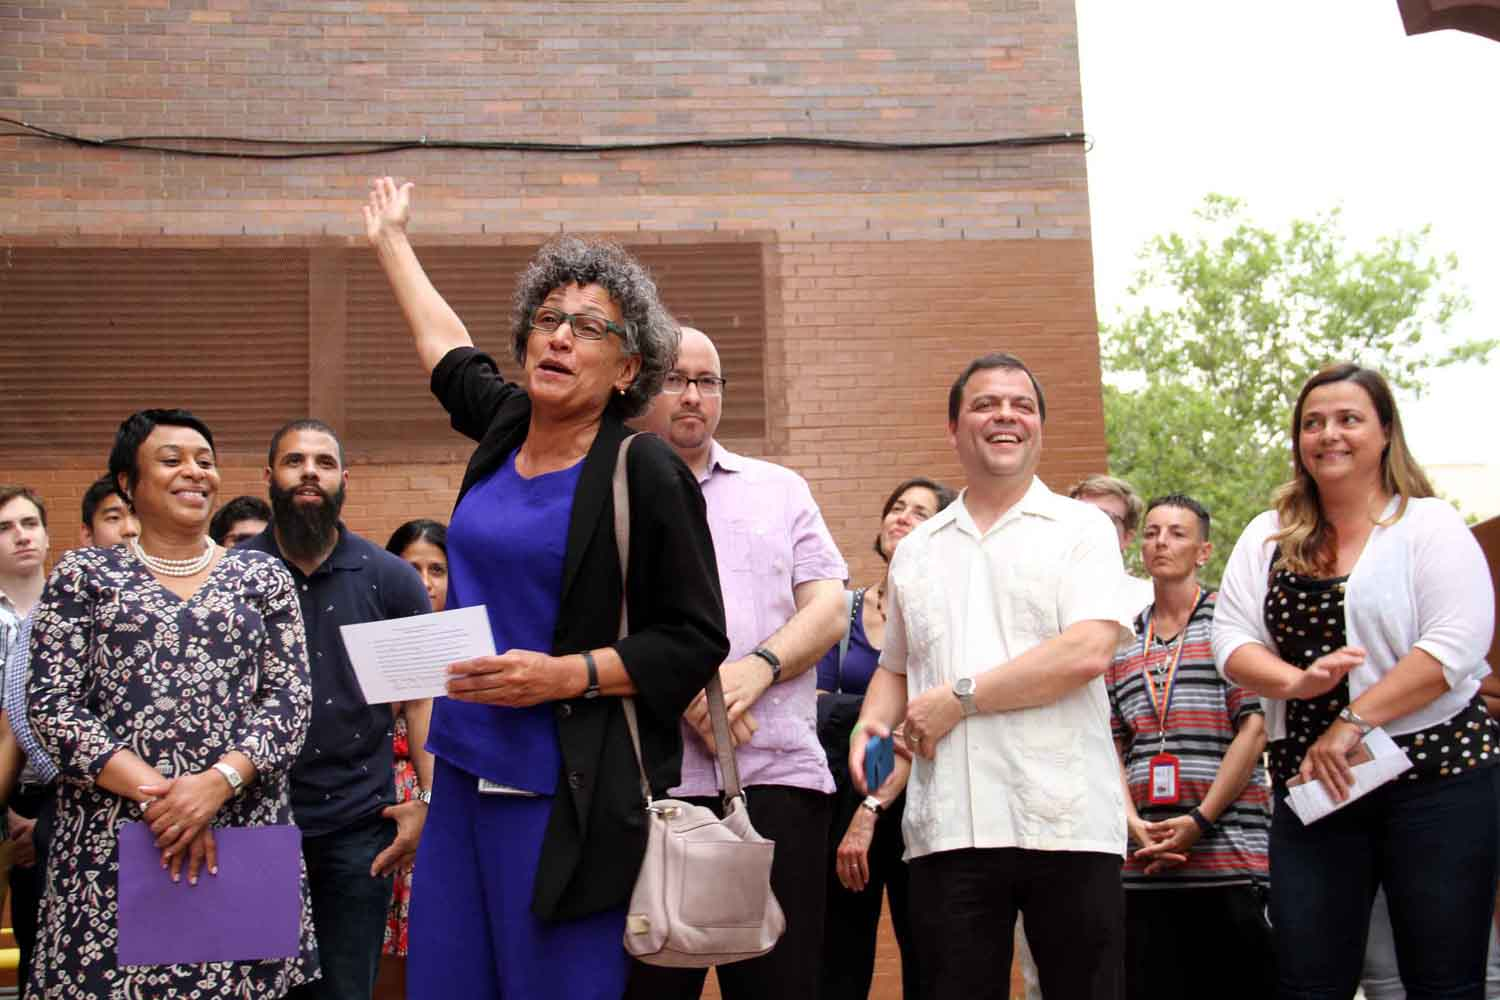 At the mural unveiling are (l-r): Dr. Mary Bassett, Senator Gustavo Rivera and Assemblyman Luis Sepulveda.--Photo by David Greene